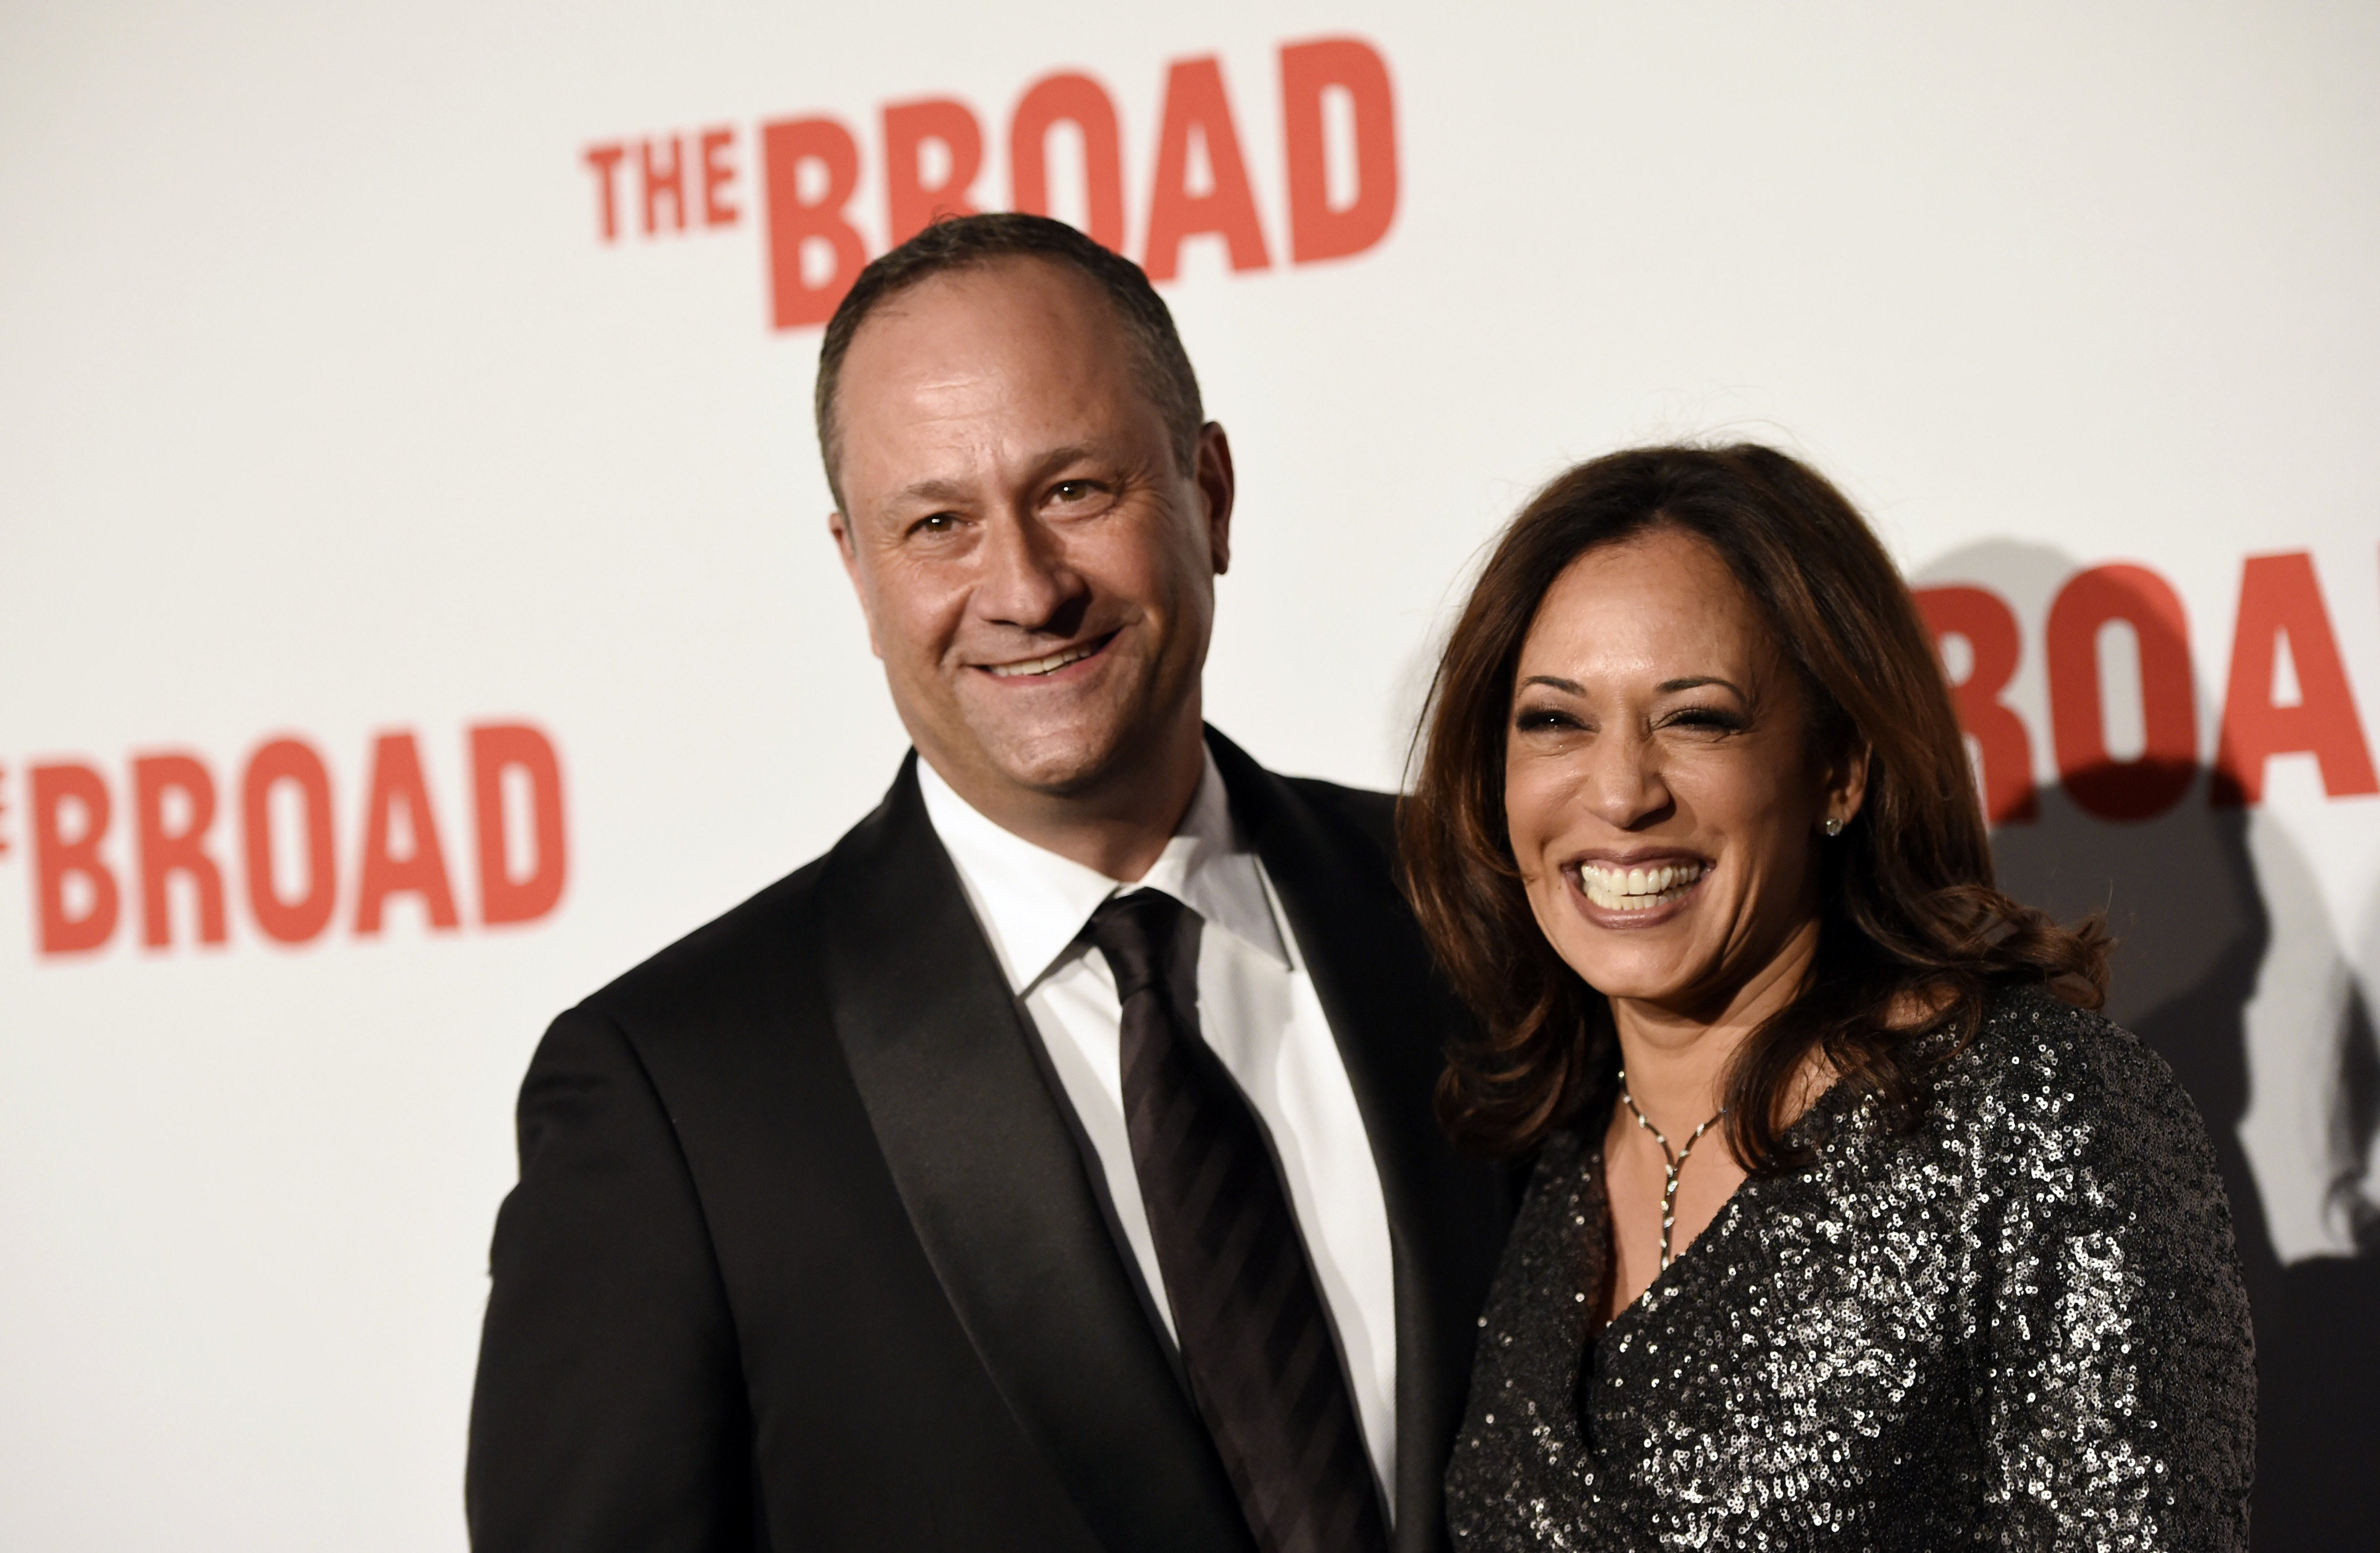 What To Know About Douglas Emhoff Kamala Harris Husband After That Onstage Protester Moment Fox 2